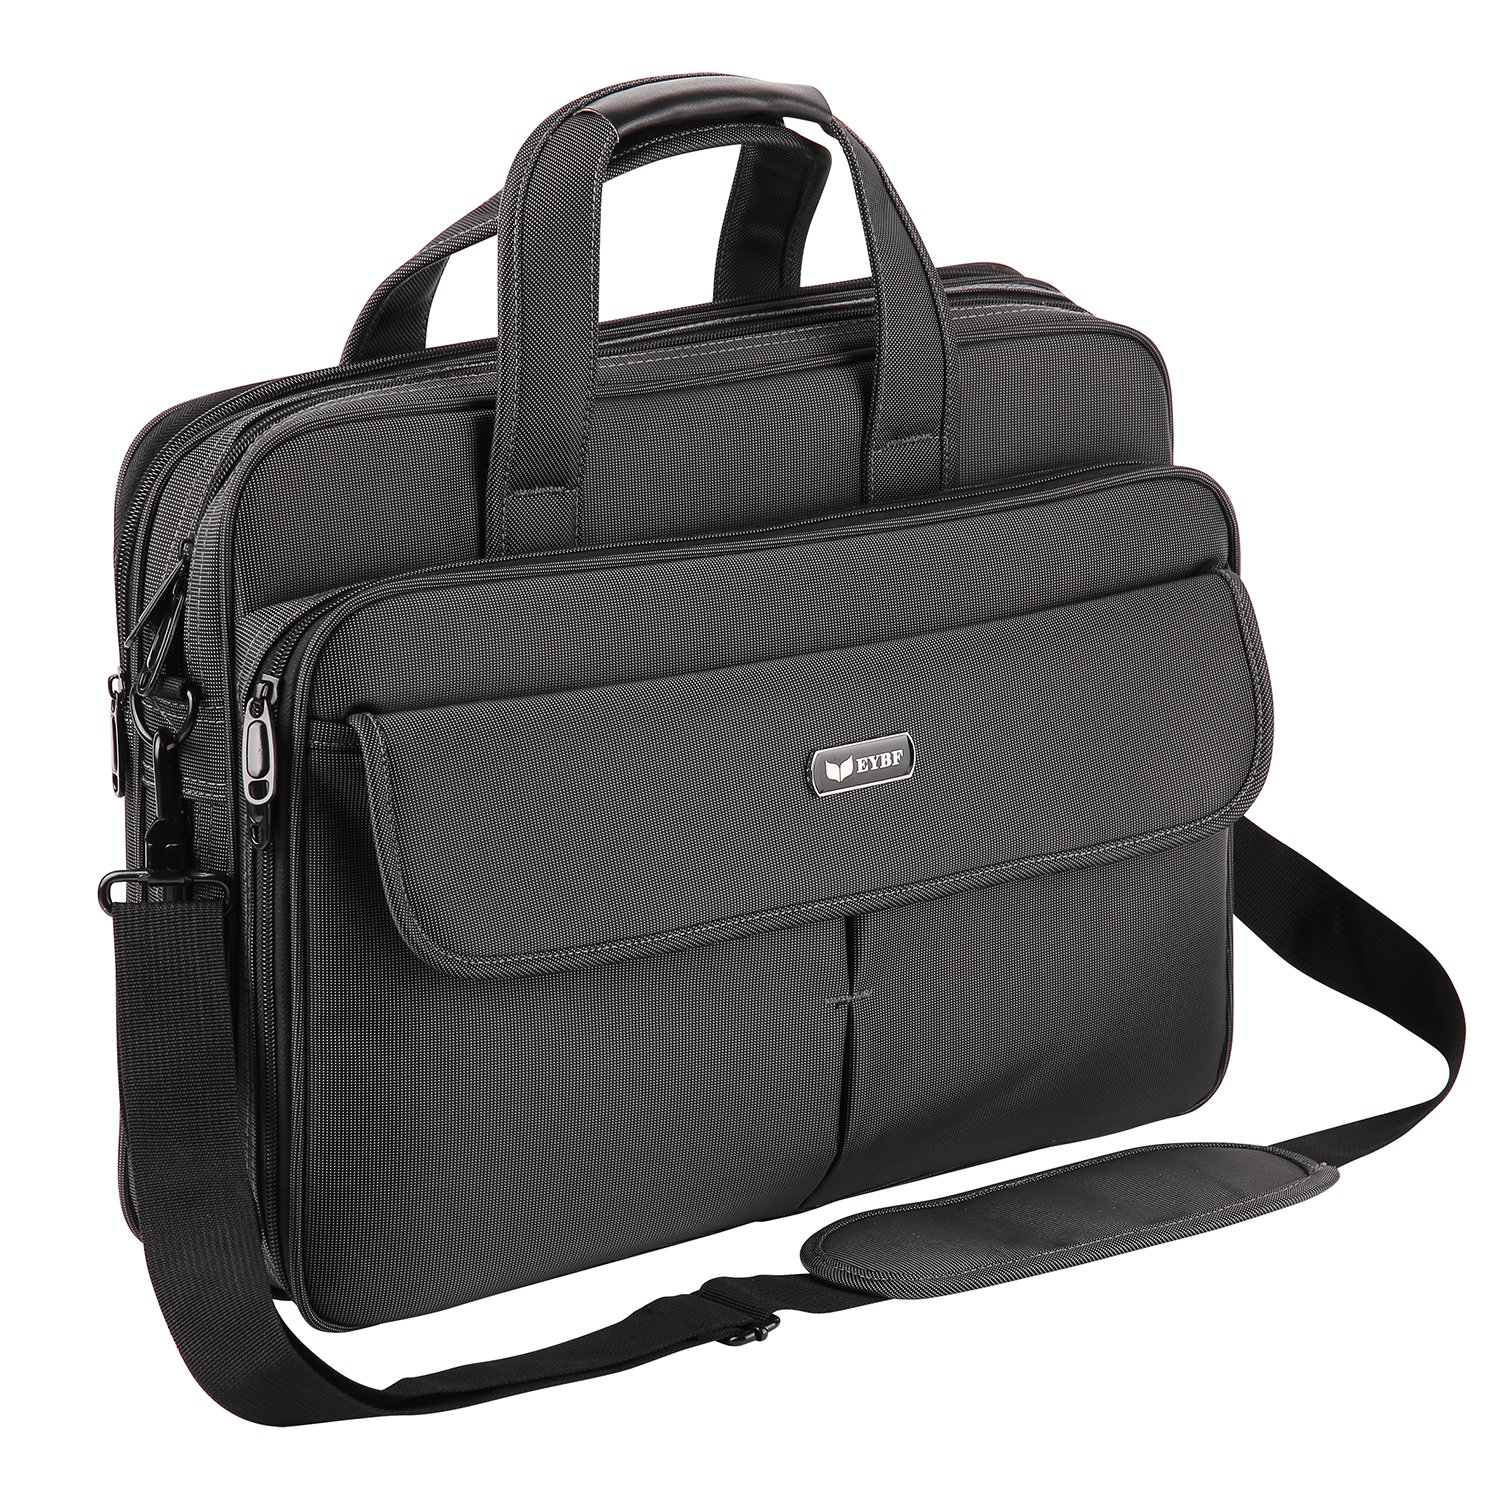 EYBF Laptop Bag 15.6 Inch, Expandable Travel Business Briefcase for Men & Women, Water Resistant Messenger Shoulder Bag with Organizer, Black by EYBF (Image #7)